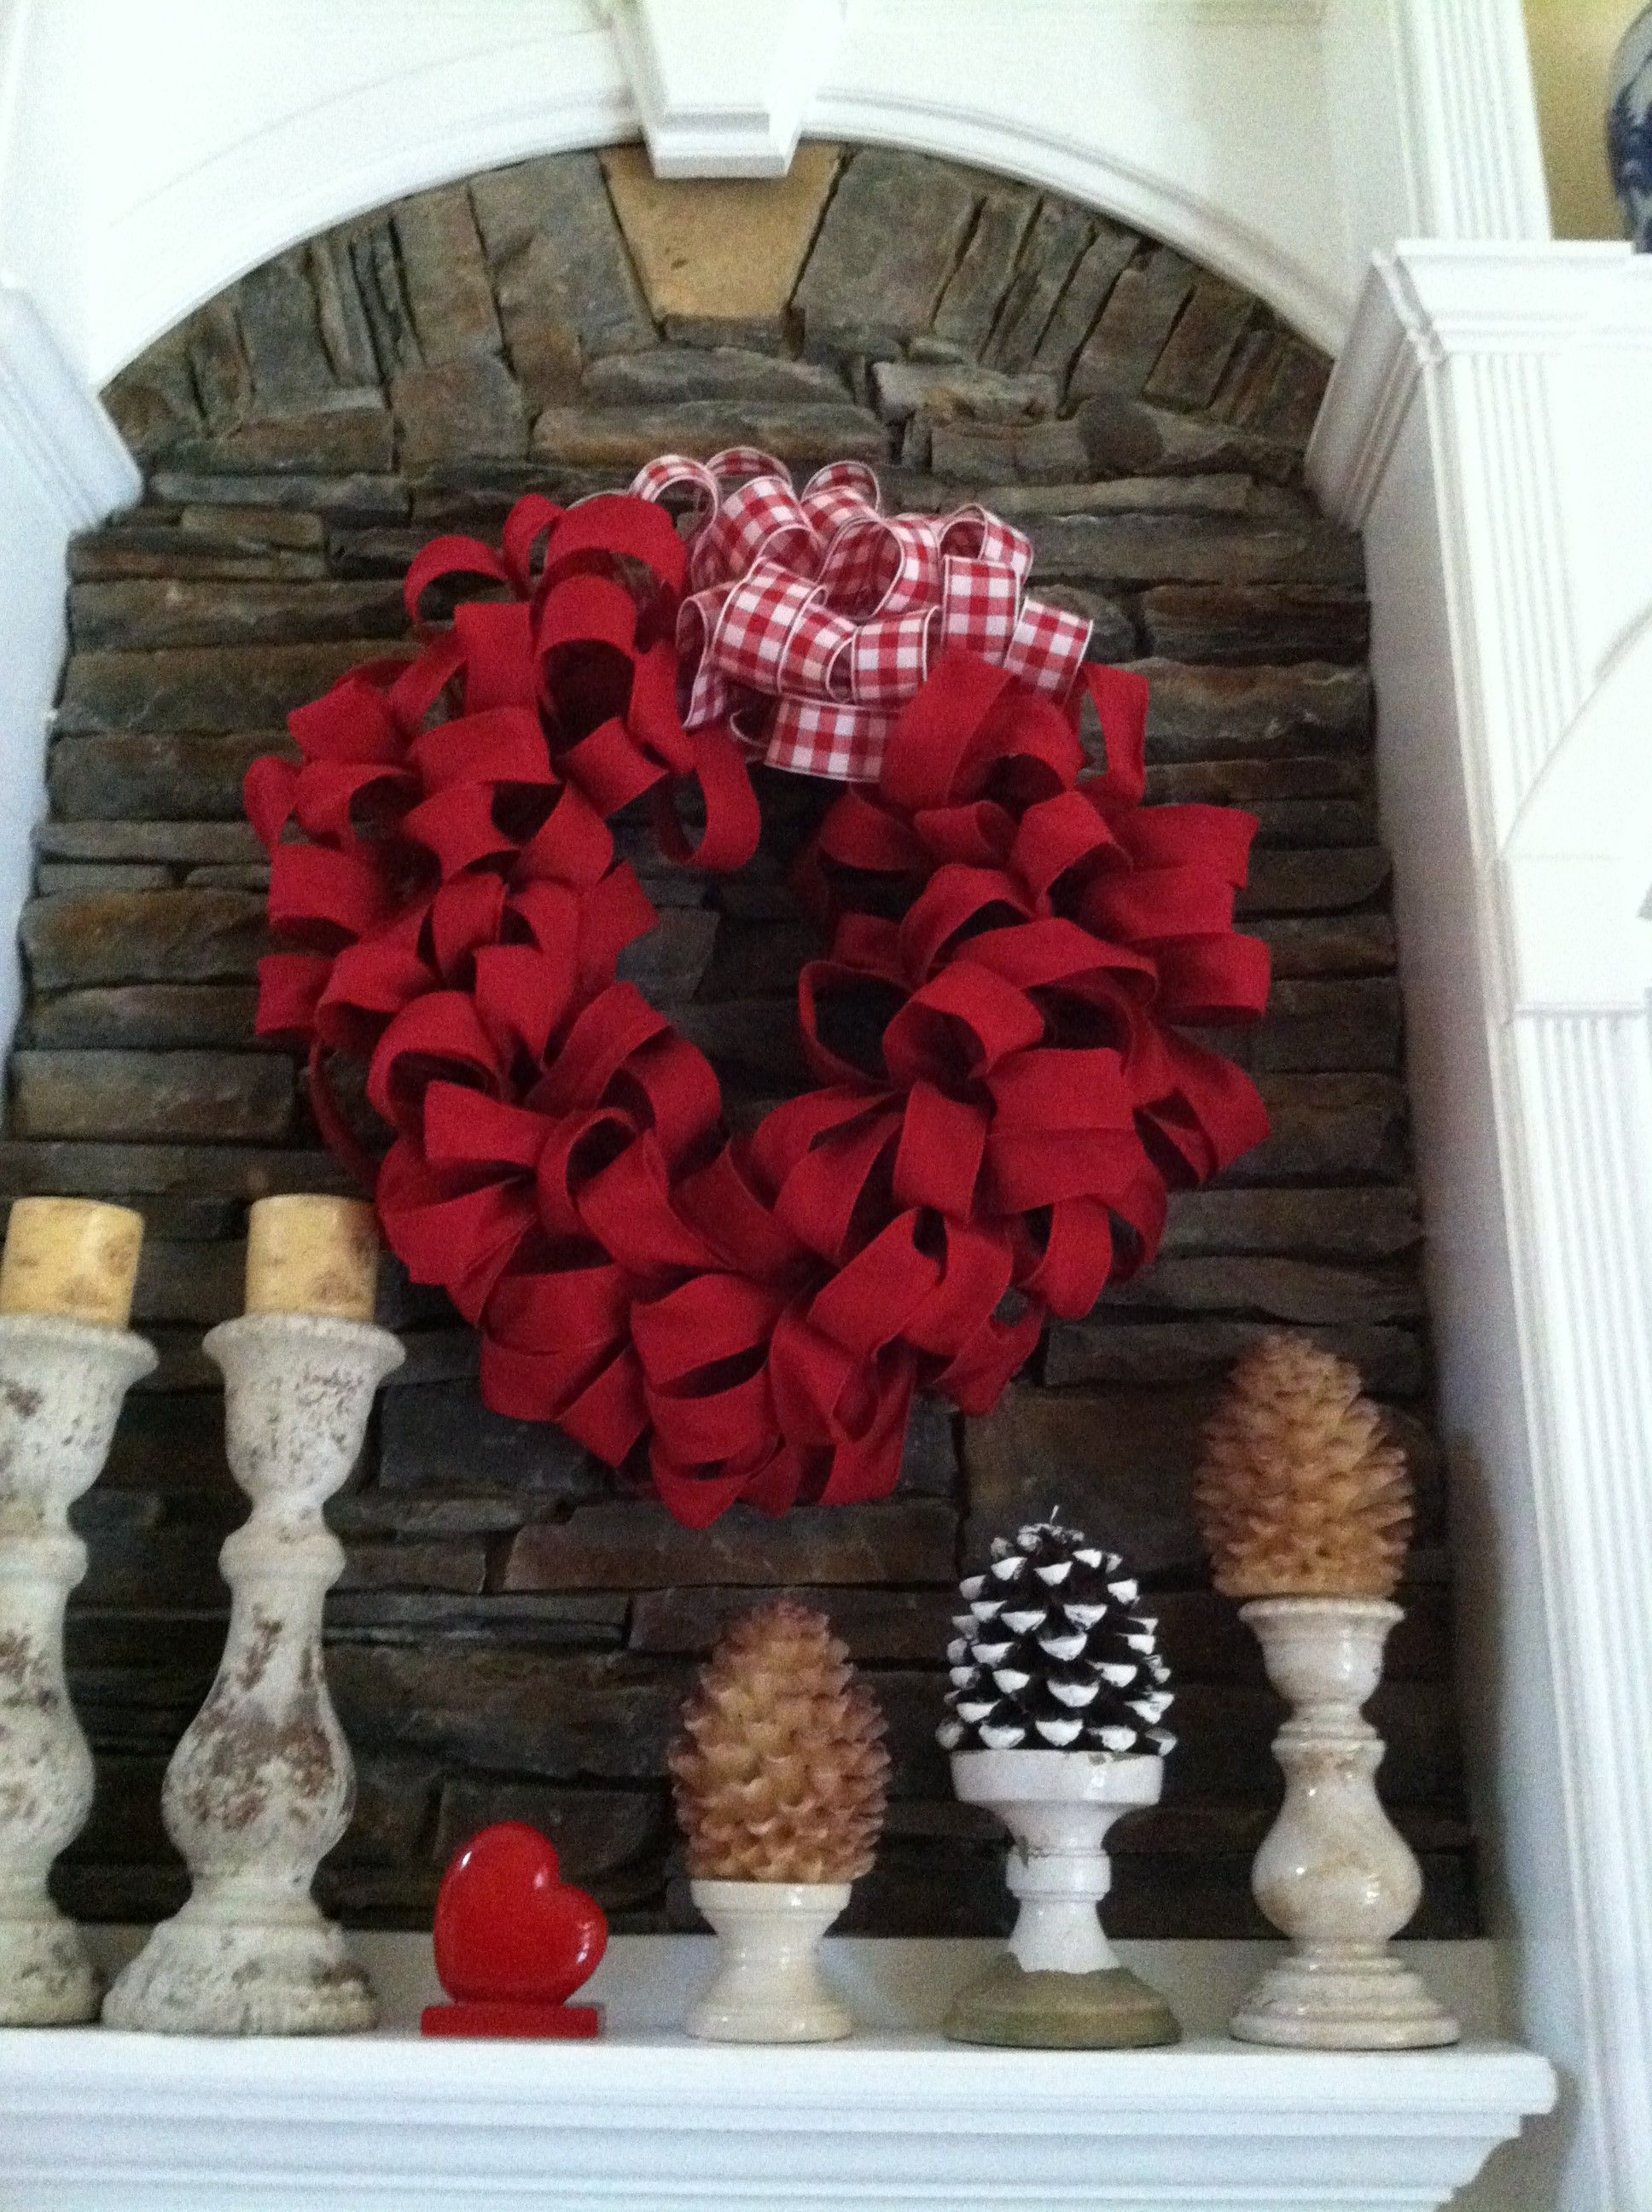 Try Making A Beautiful Red Burlap Wreath This Valentines Day To Hang Above  Your Fireplace Or On Your Front Door In This Picture, Mary